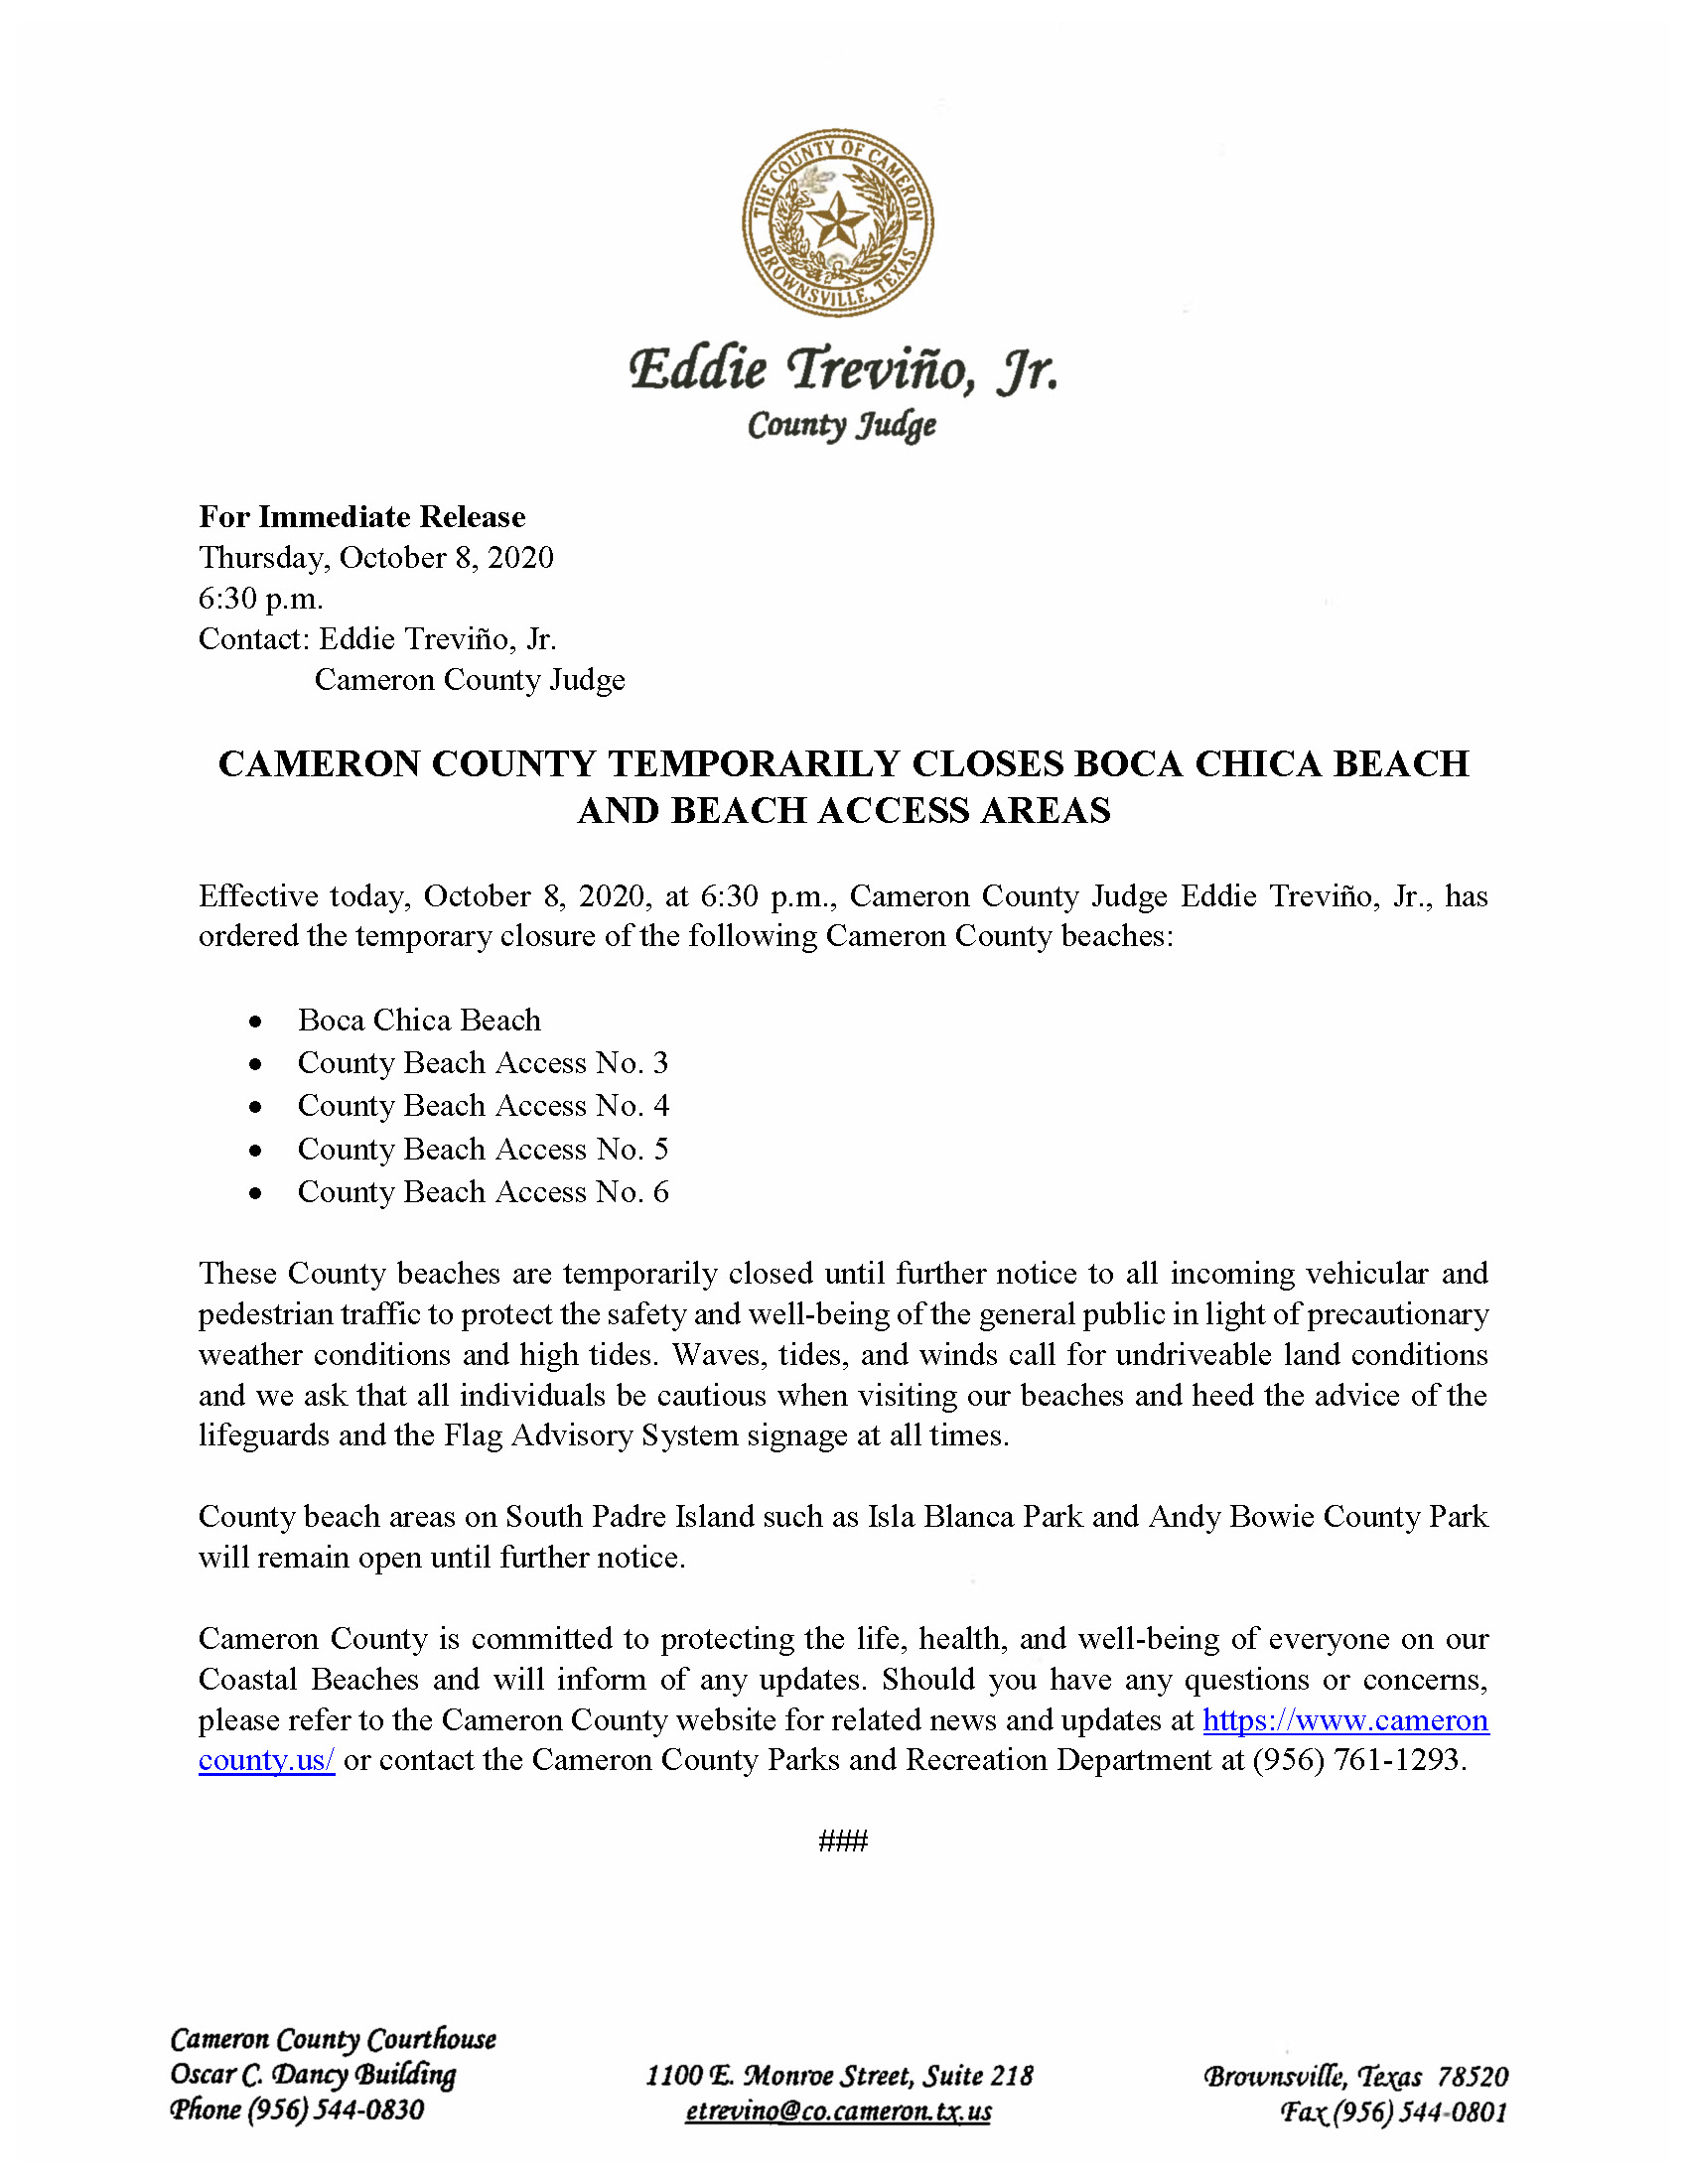 10.8.20 Closure Of County Beaches Due To Weather Conditions